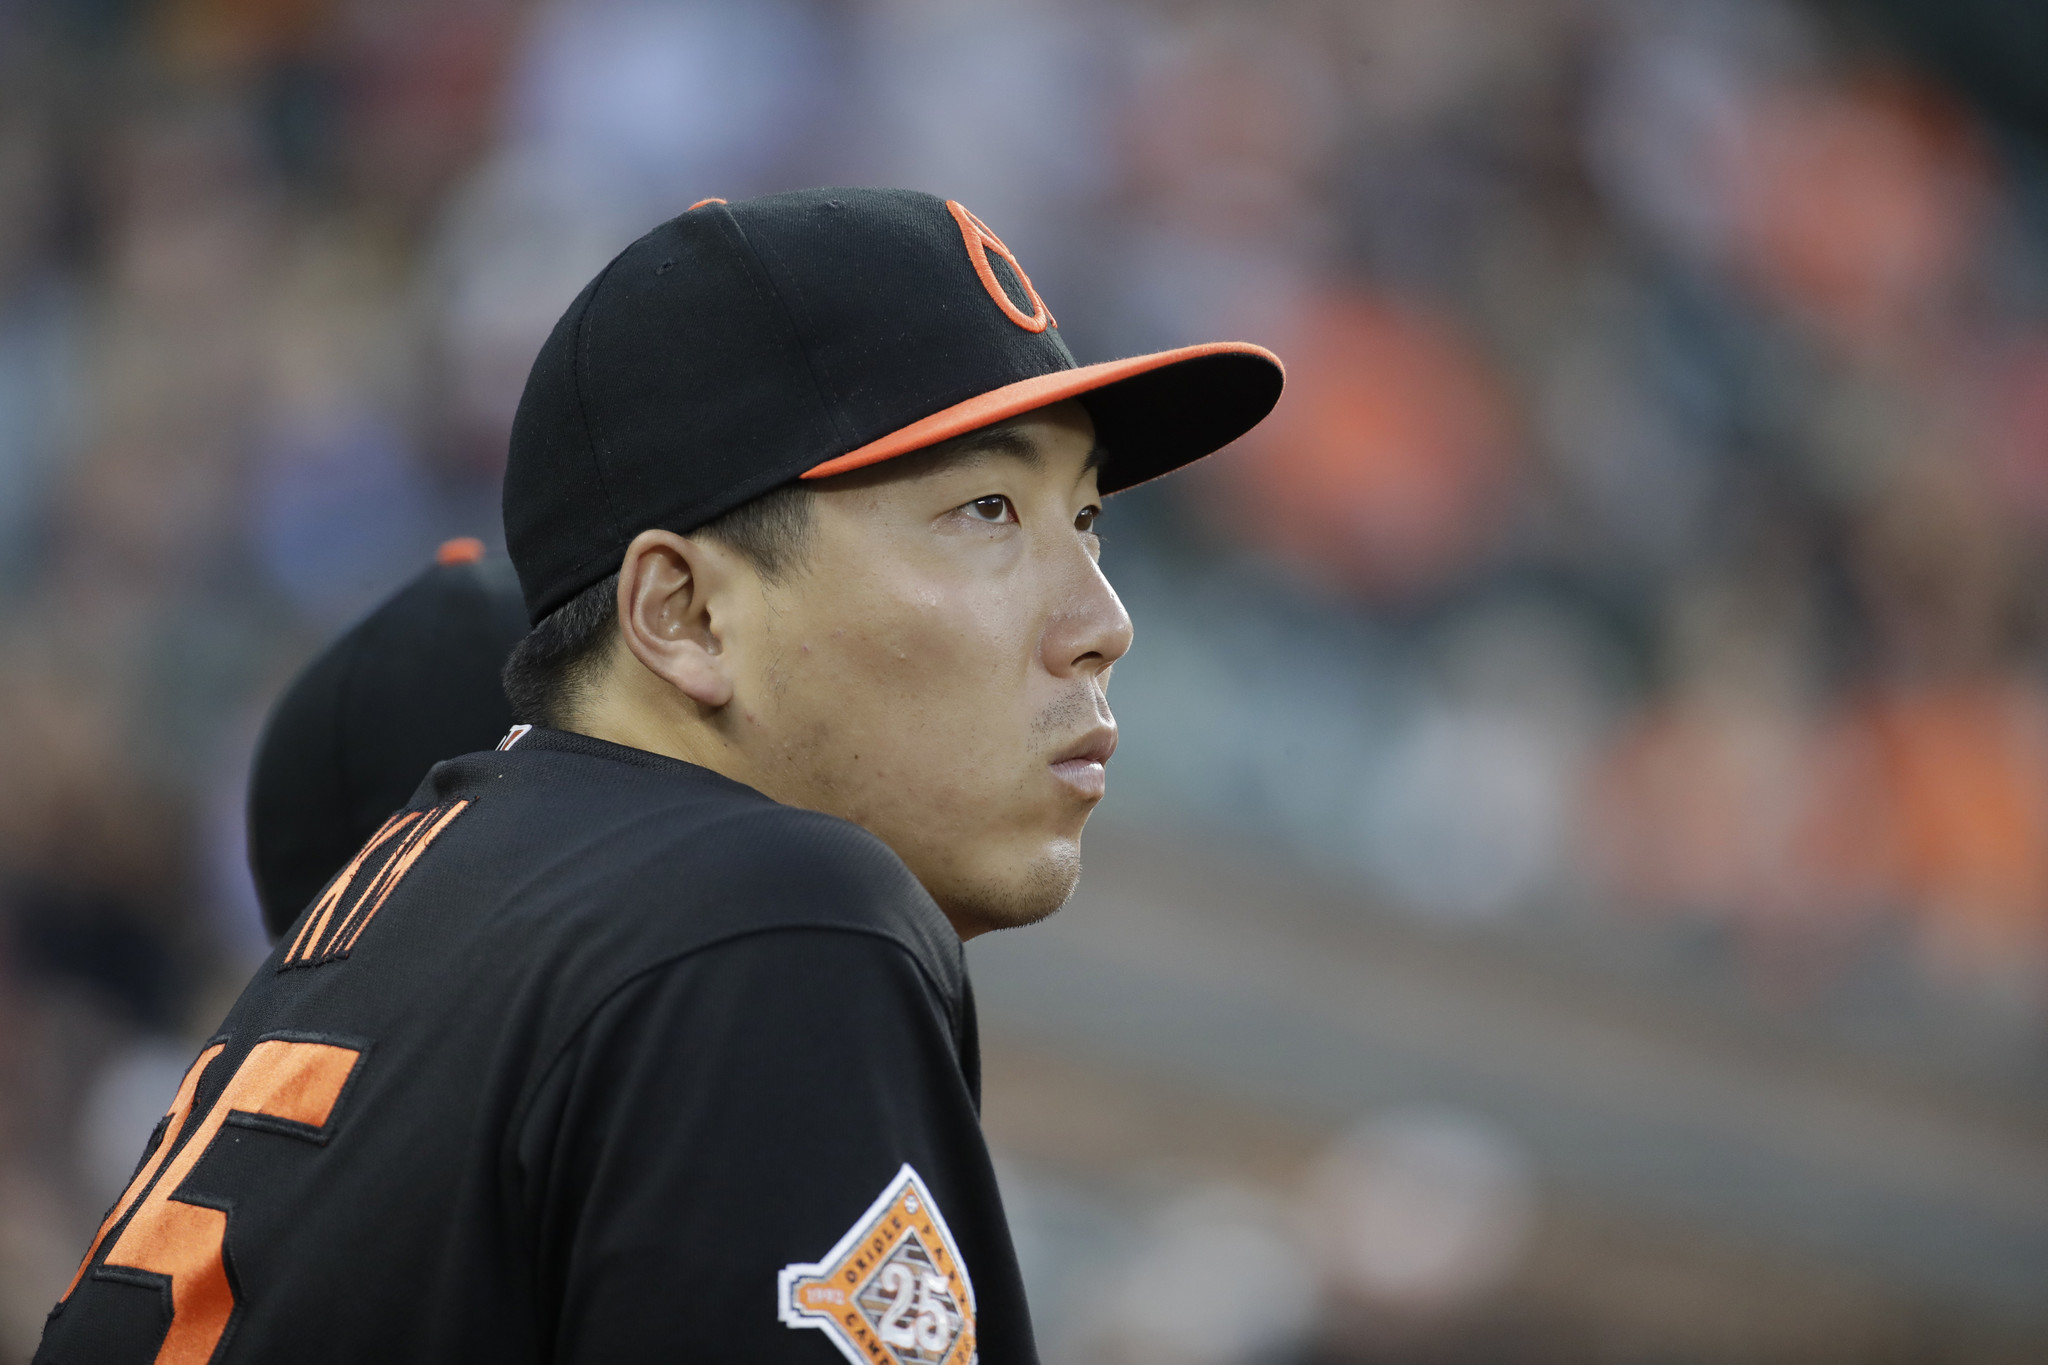 Bal-buck-showalter-laments-another-tough-stretch-out-of-the-lineup-for-hyun-soo-kim-20170422